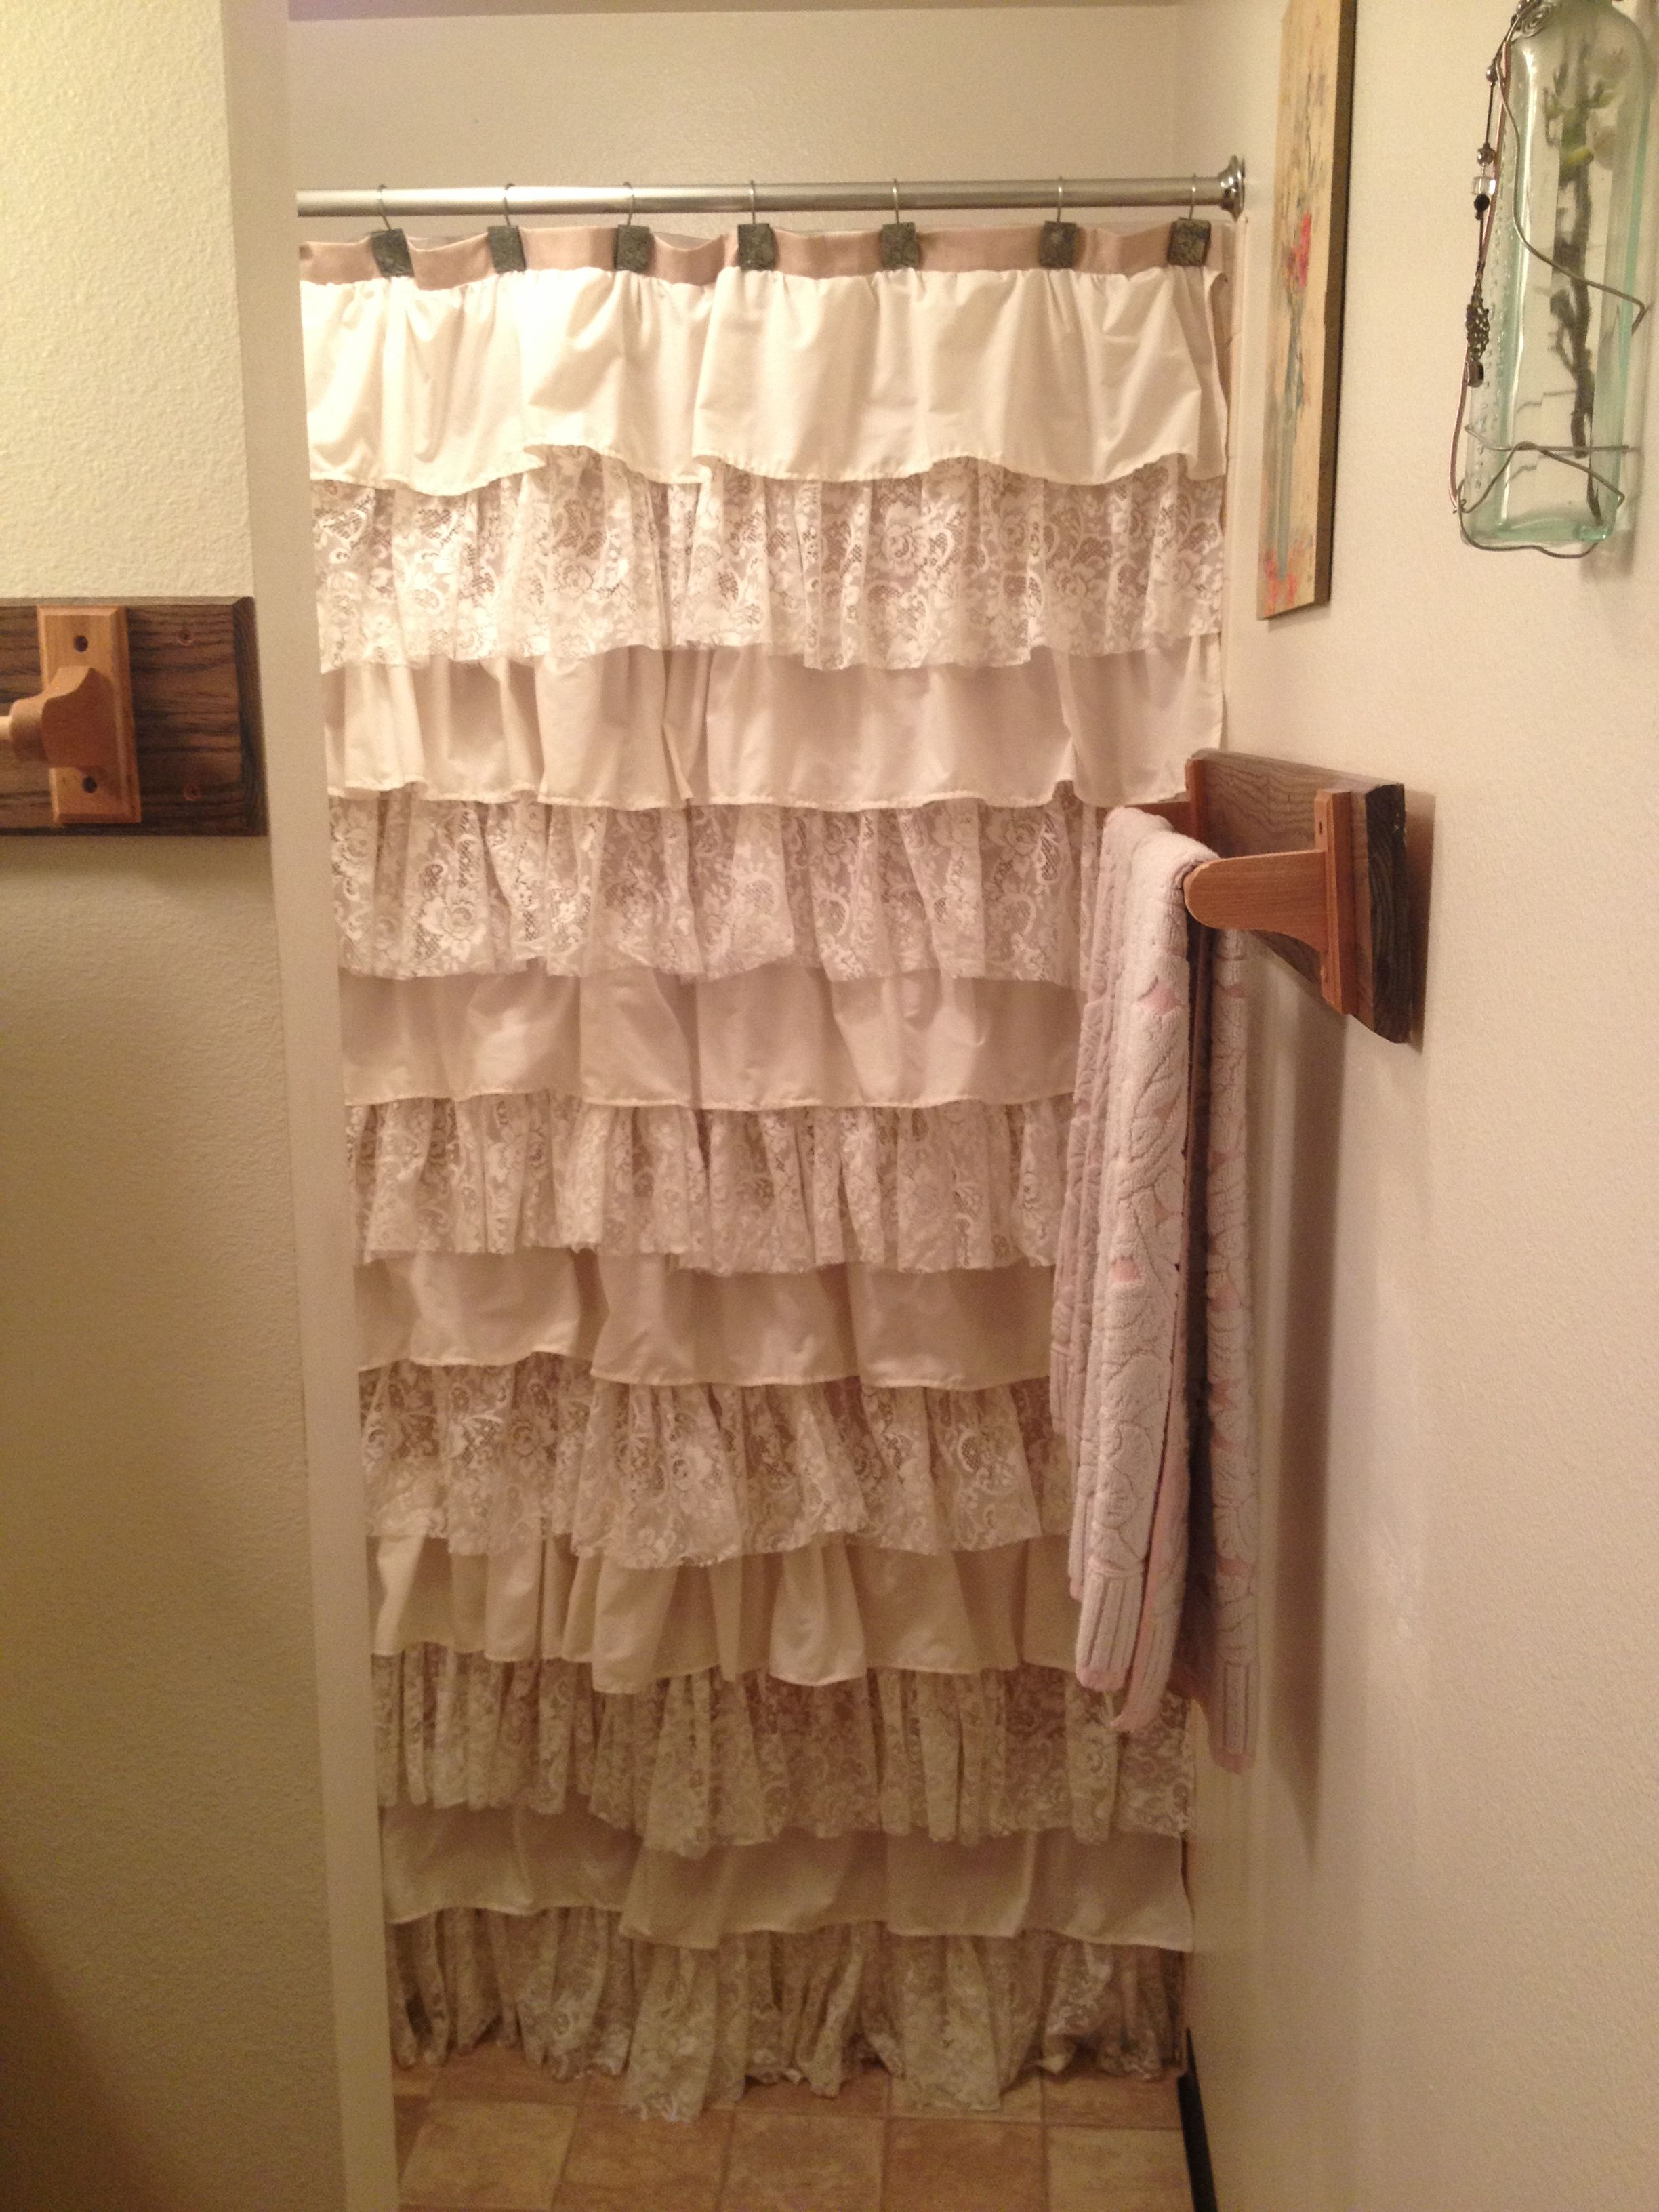 Made My Own Anthropology Inspired Ruffle Shower Curtain Out Of